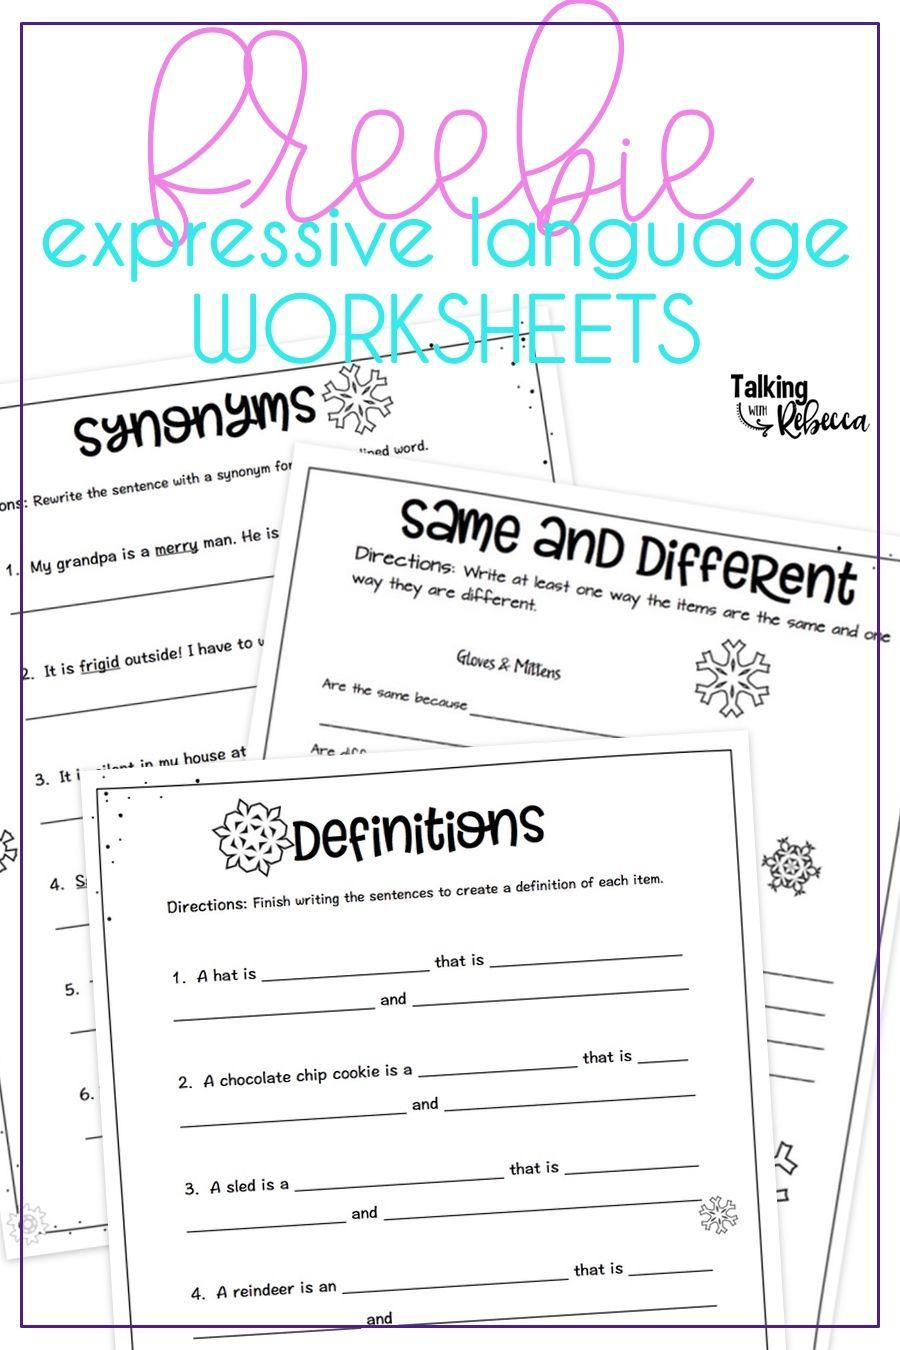 Free Expressive Language Worksheets Language Therapy Activities Speech Language Activities Speech Therapy Materials